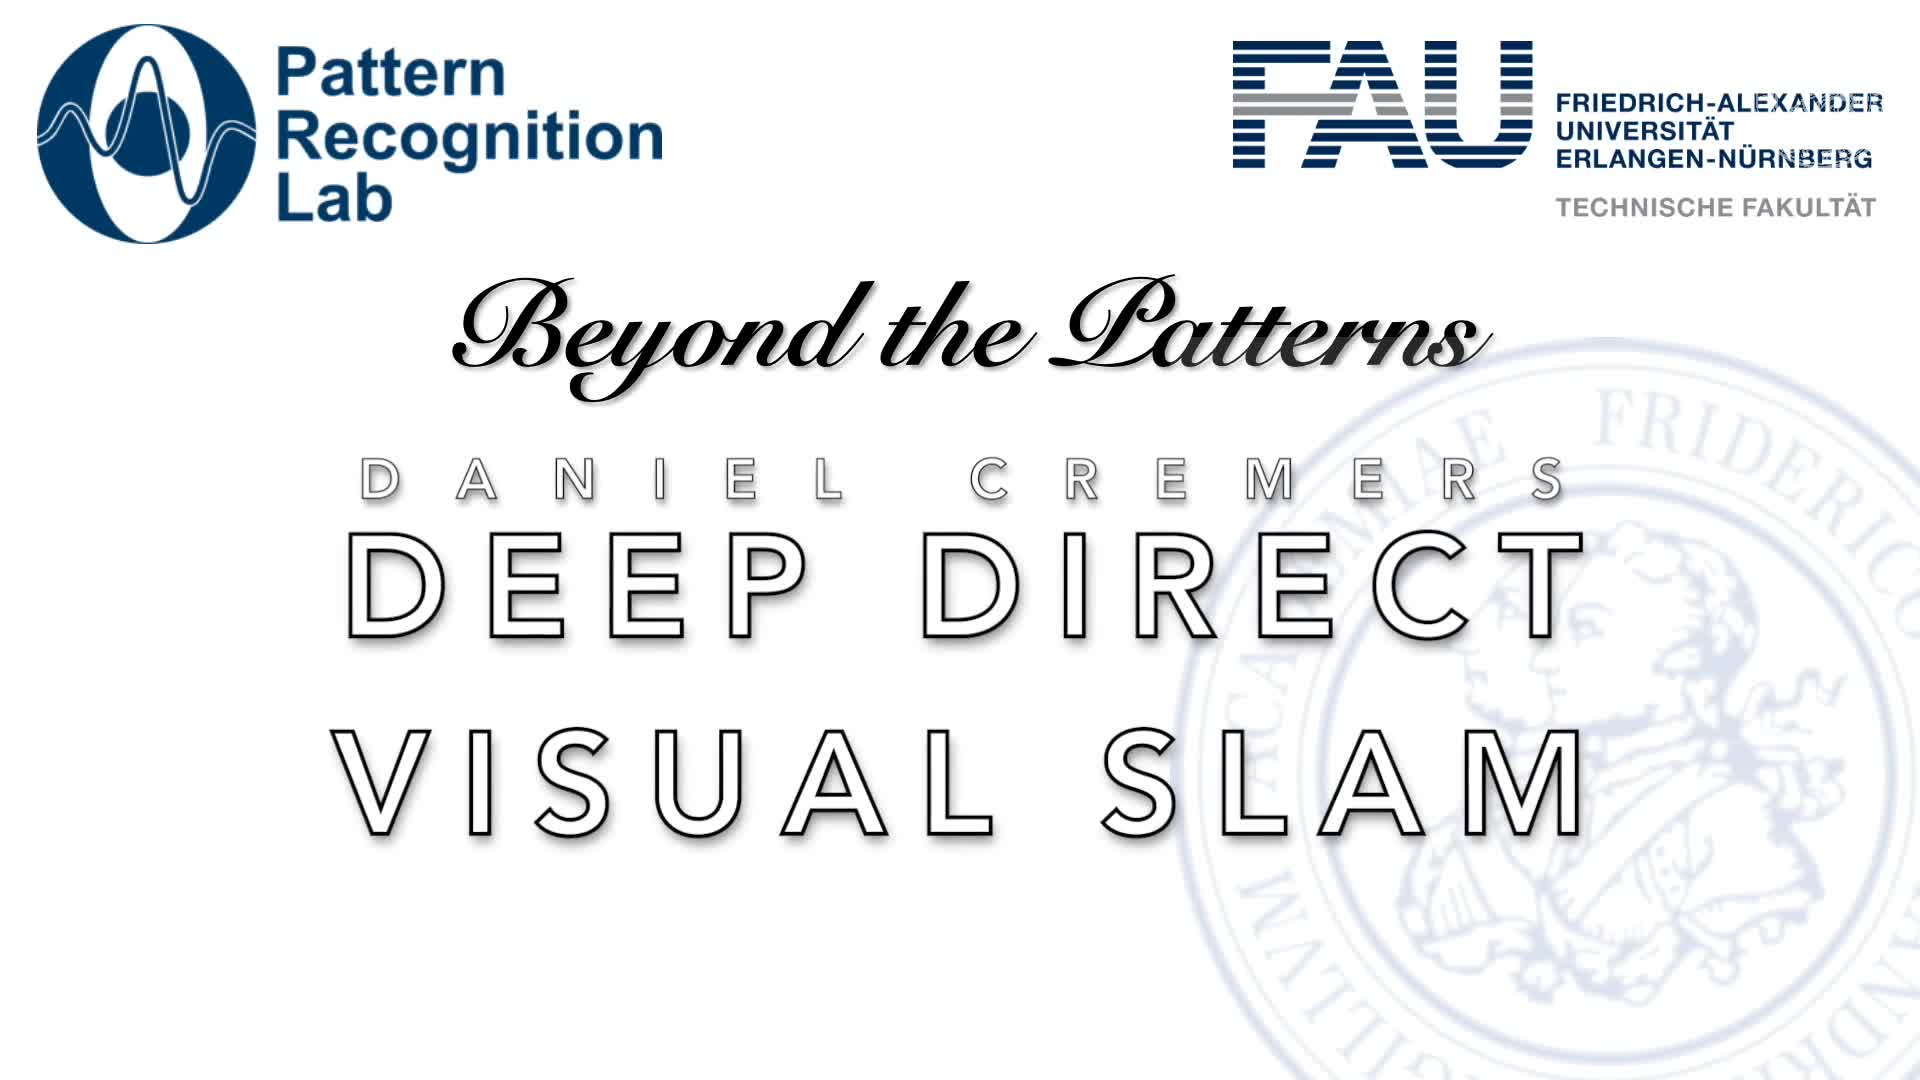 Beyond the Patterns - Daniel Cremers - Deep Direct Visual SLAM preview image